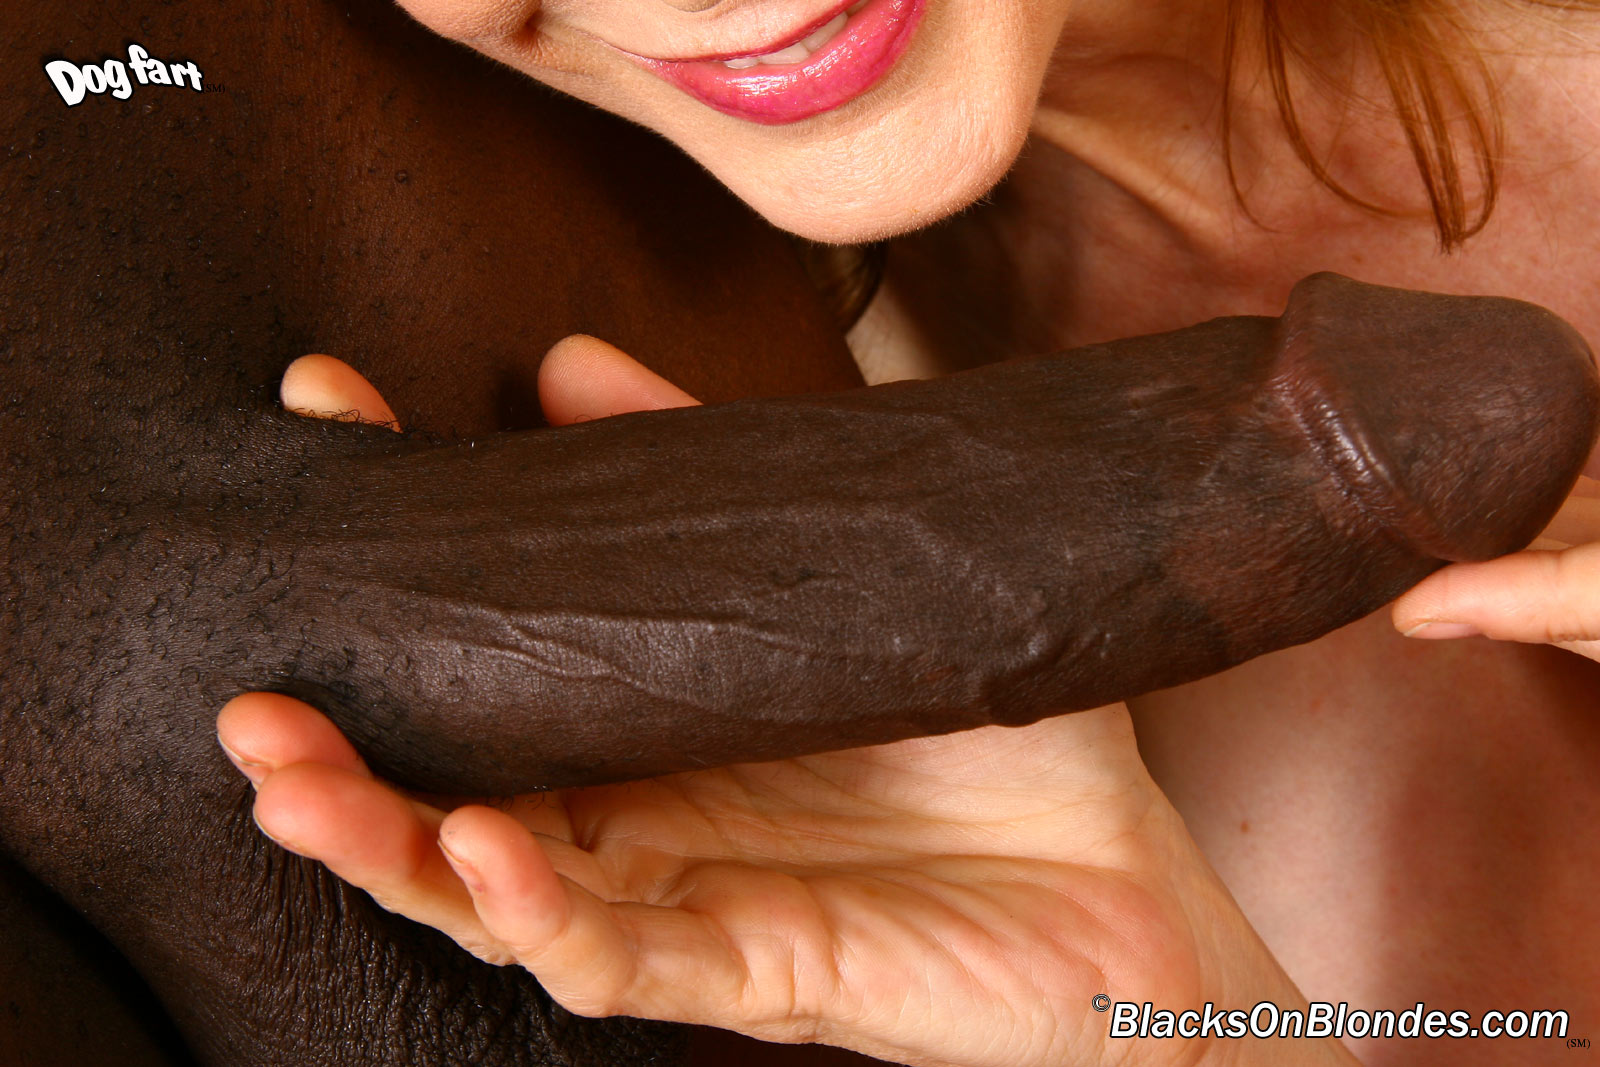 tour interracial porn nina hartley